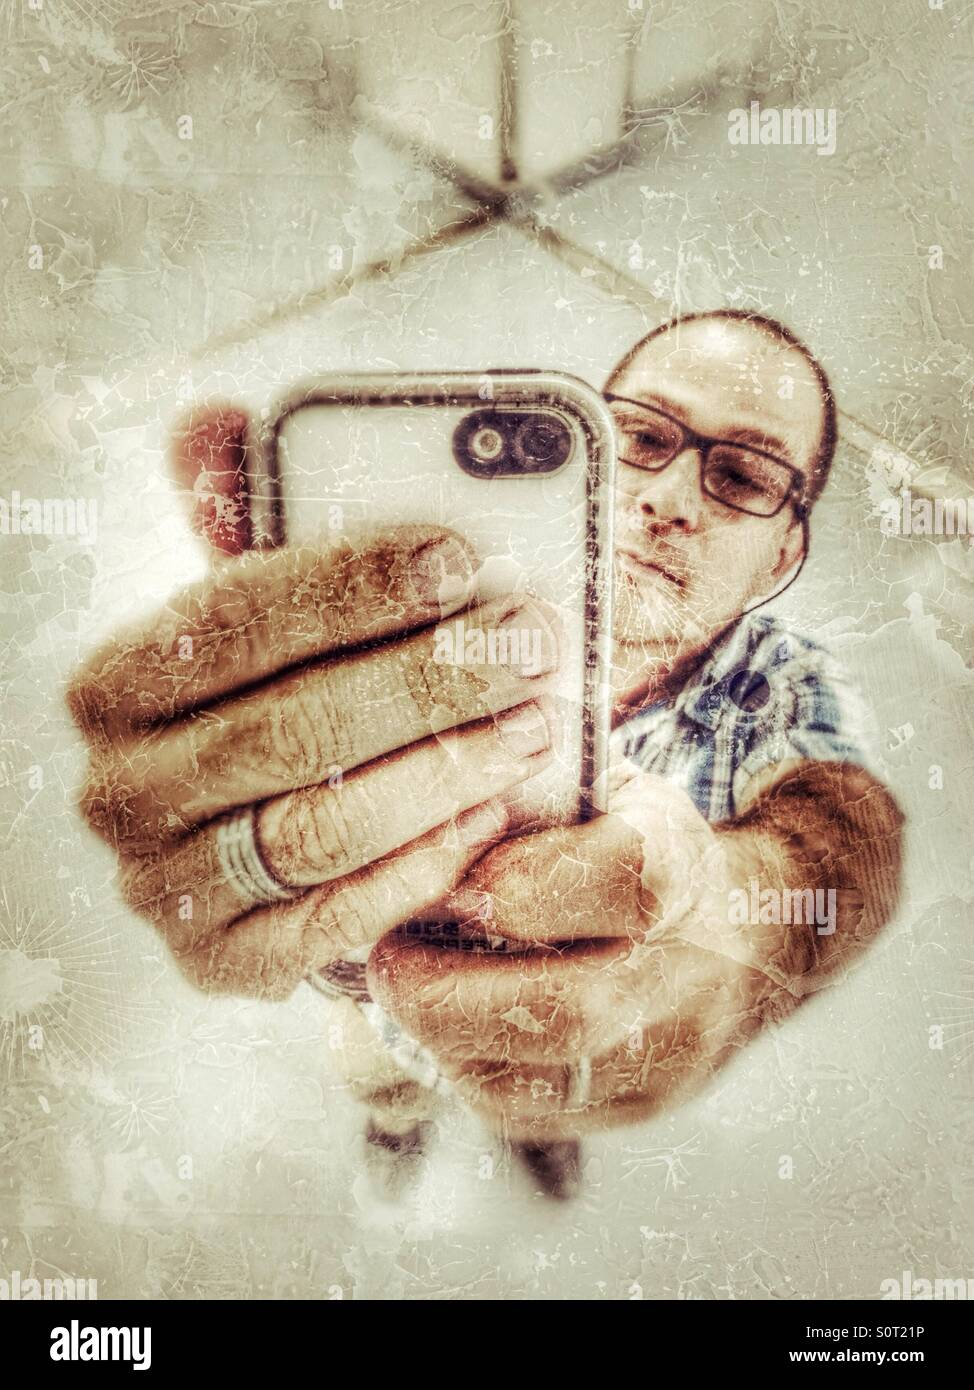 Selfie in a mirror. - Stock Image